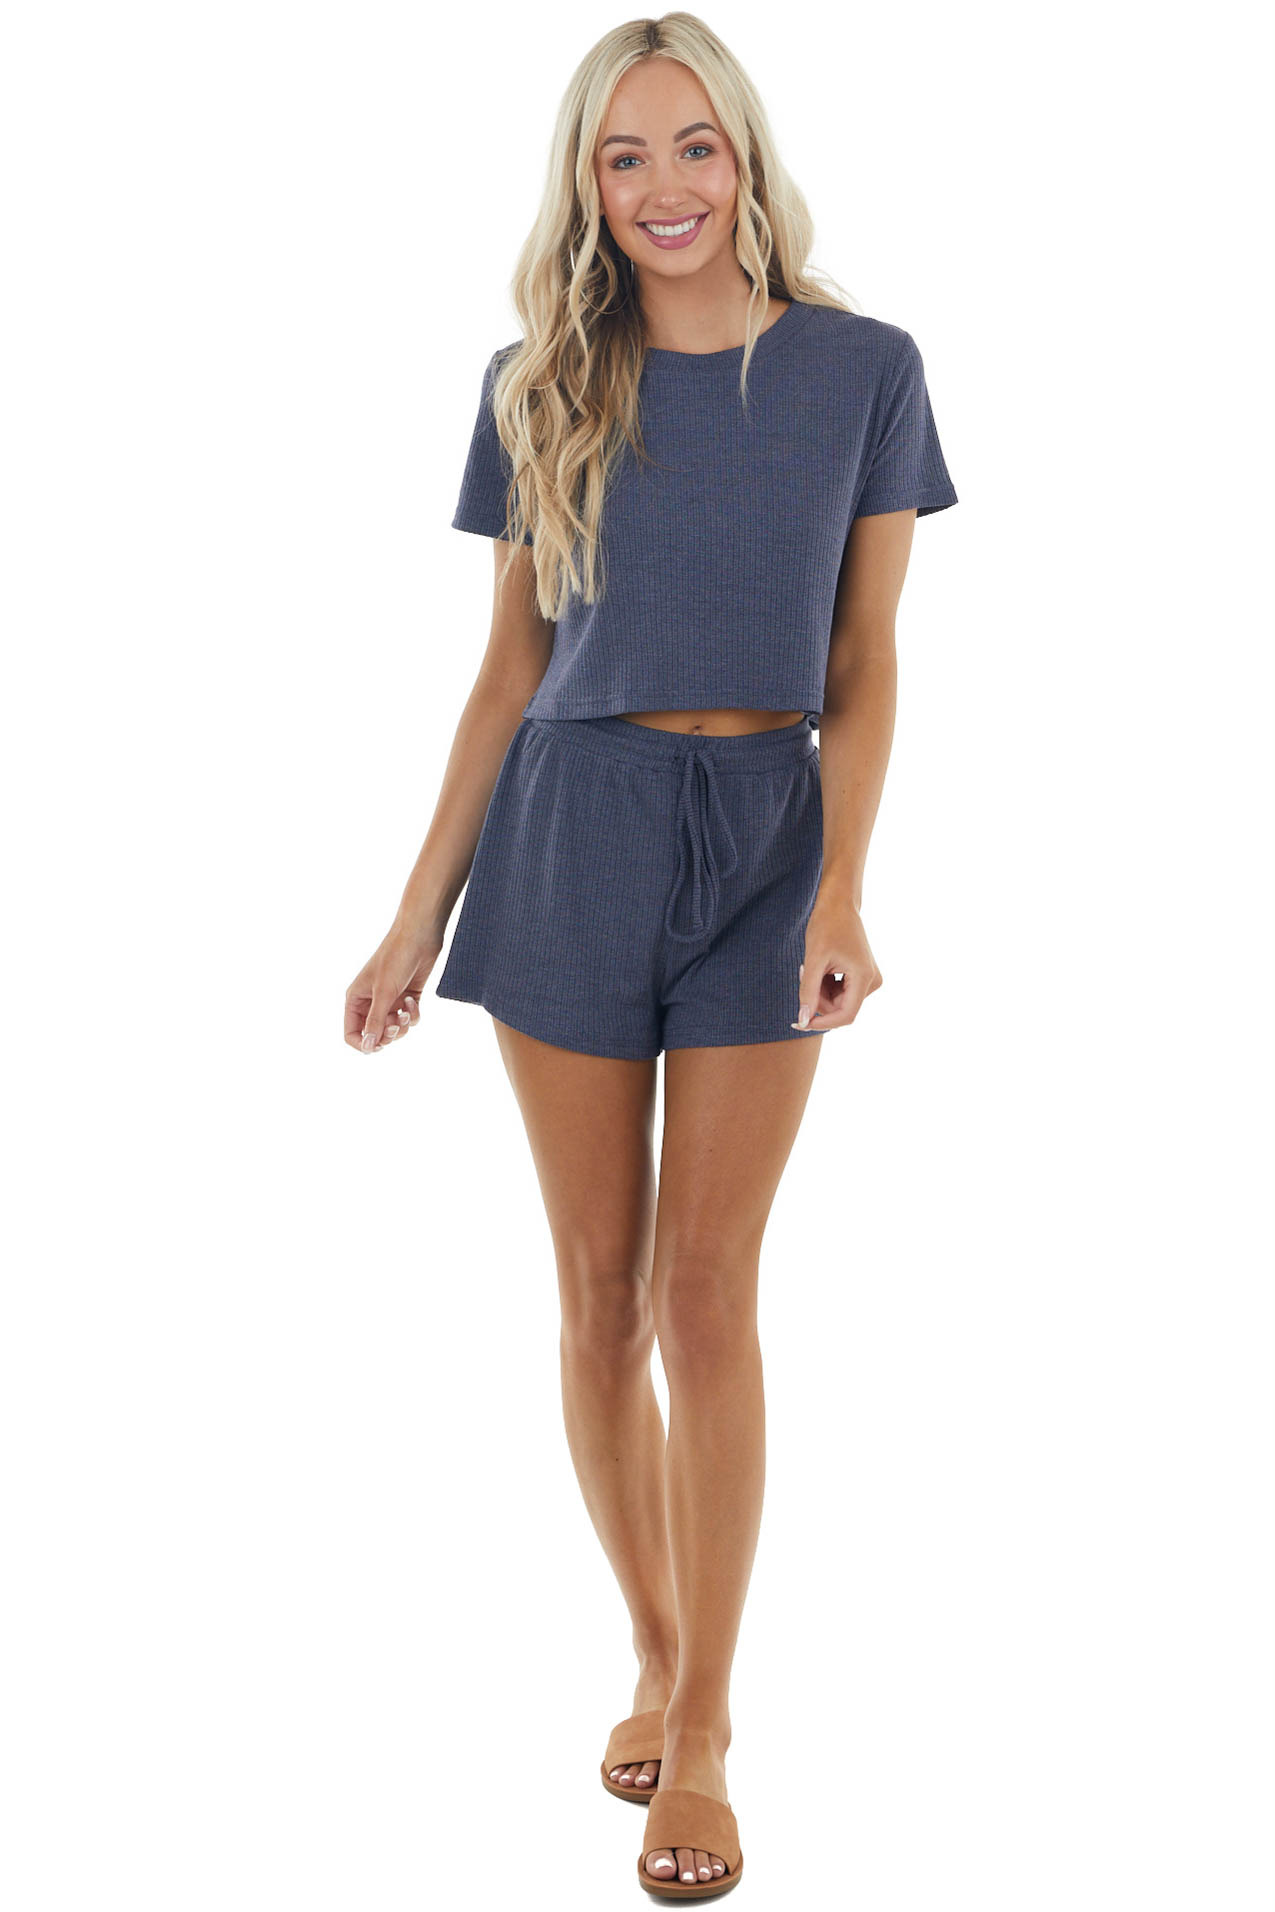 Stormy Blue Short Sleeve Ribbed Knit Top and Shorts Set